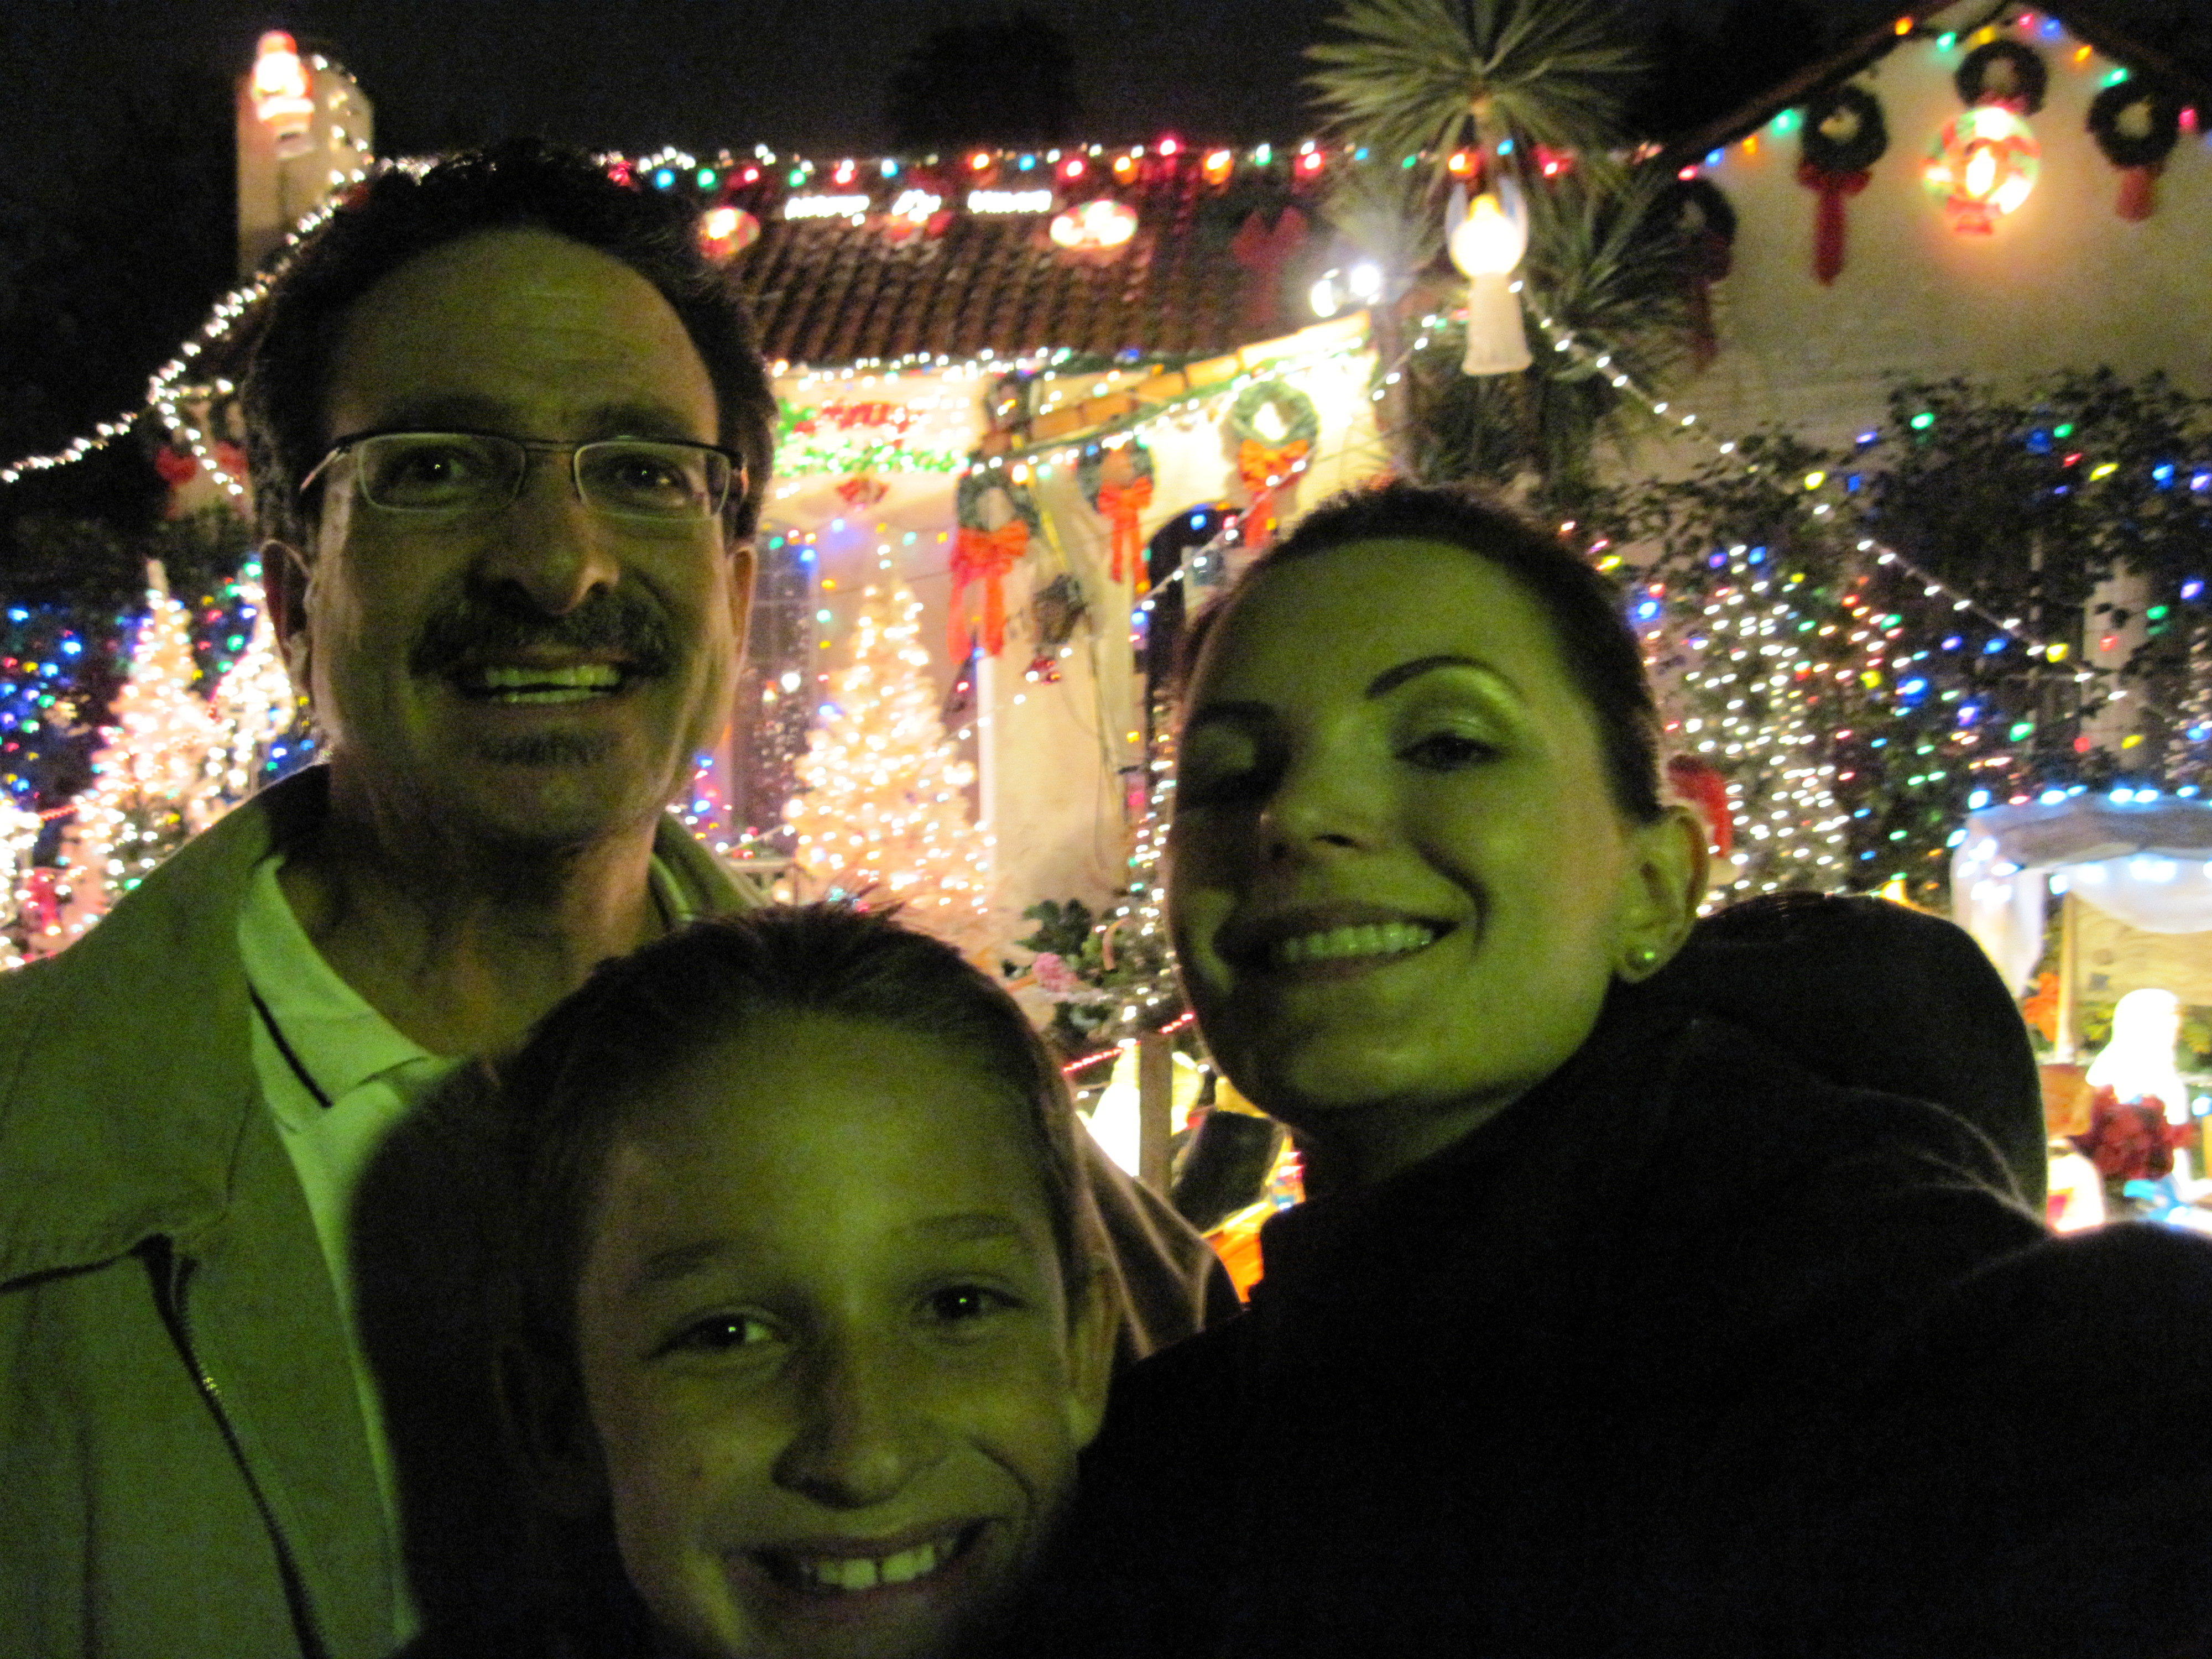 Our Christmas Lighting Viewing Tradition